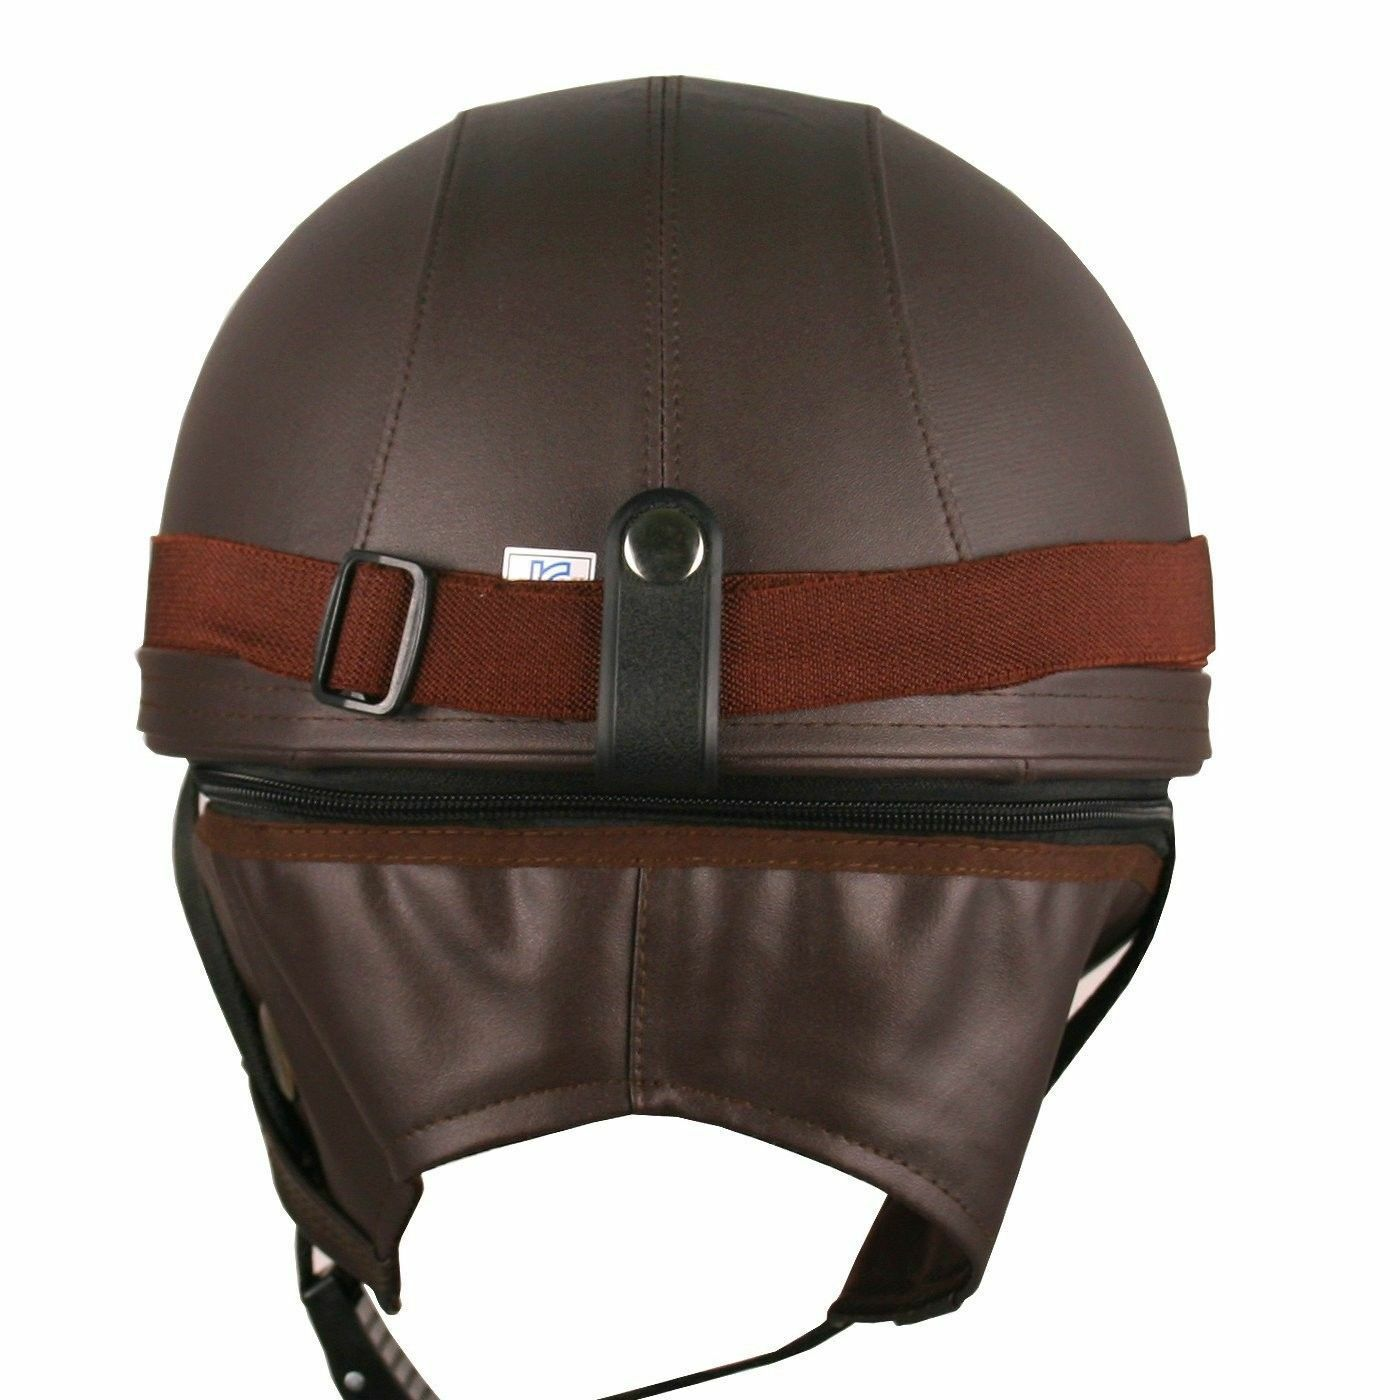 Helmet Half Motorcycle Bicycle Bike Goggle Leather Vintage Brown